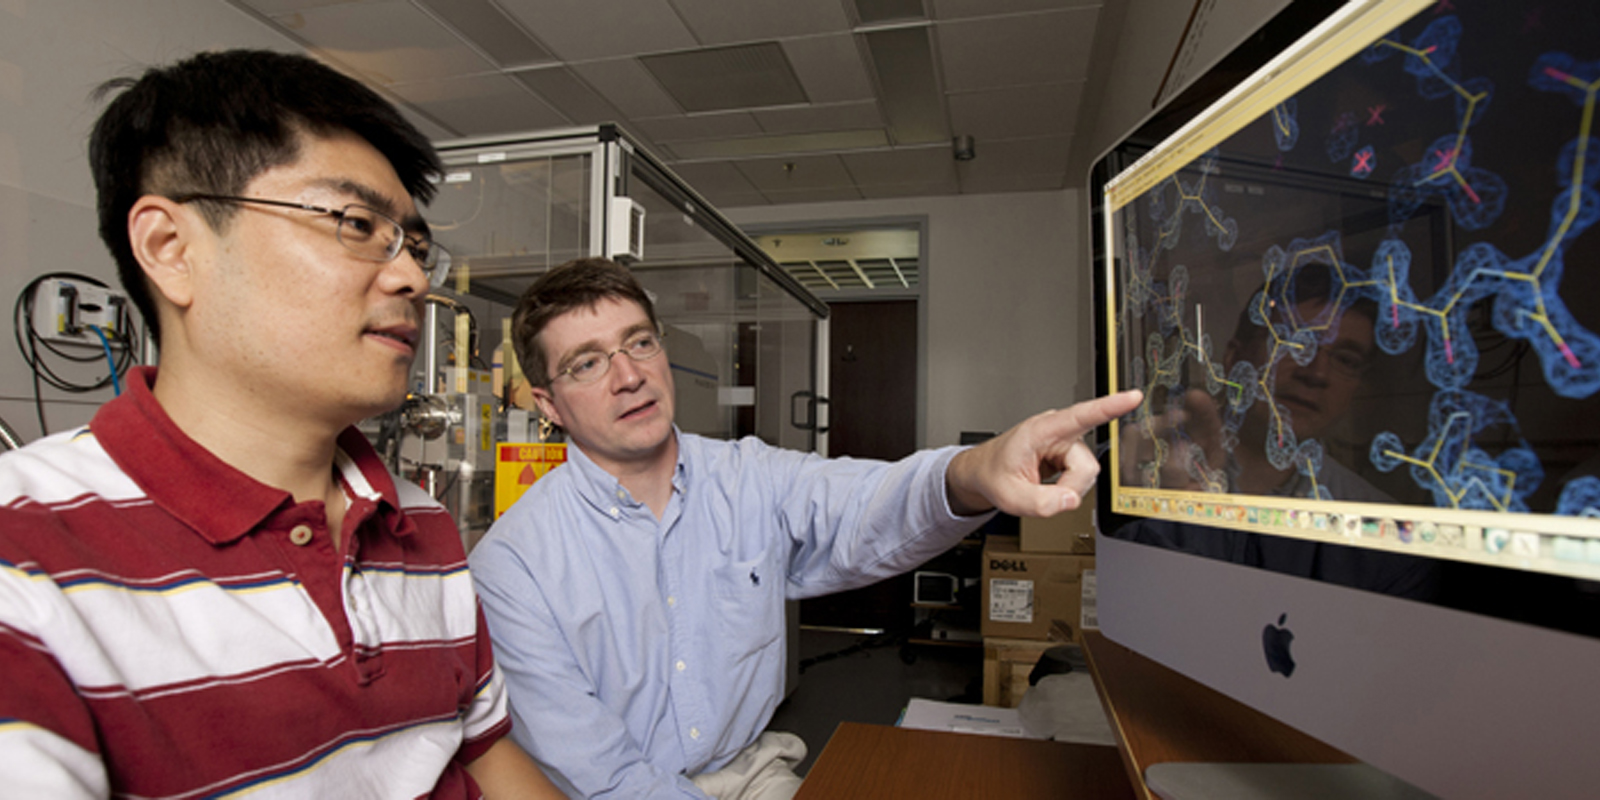 faculty looking at Molecular Mechanisms of Disease images on computer screen